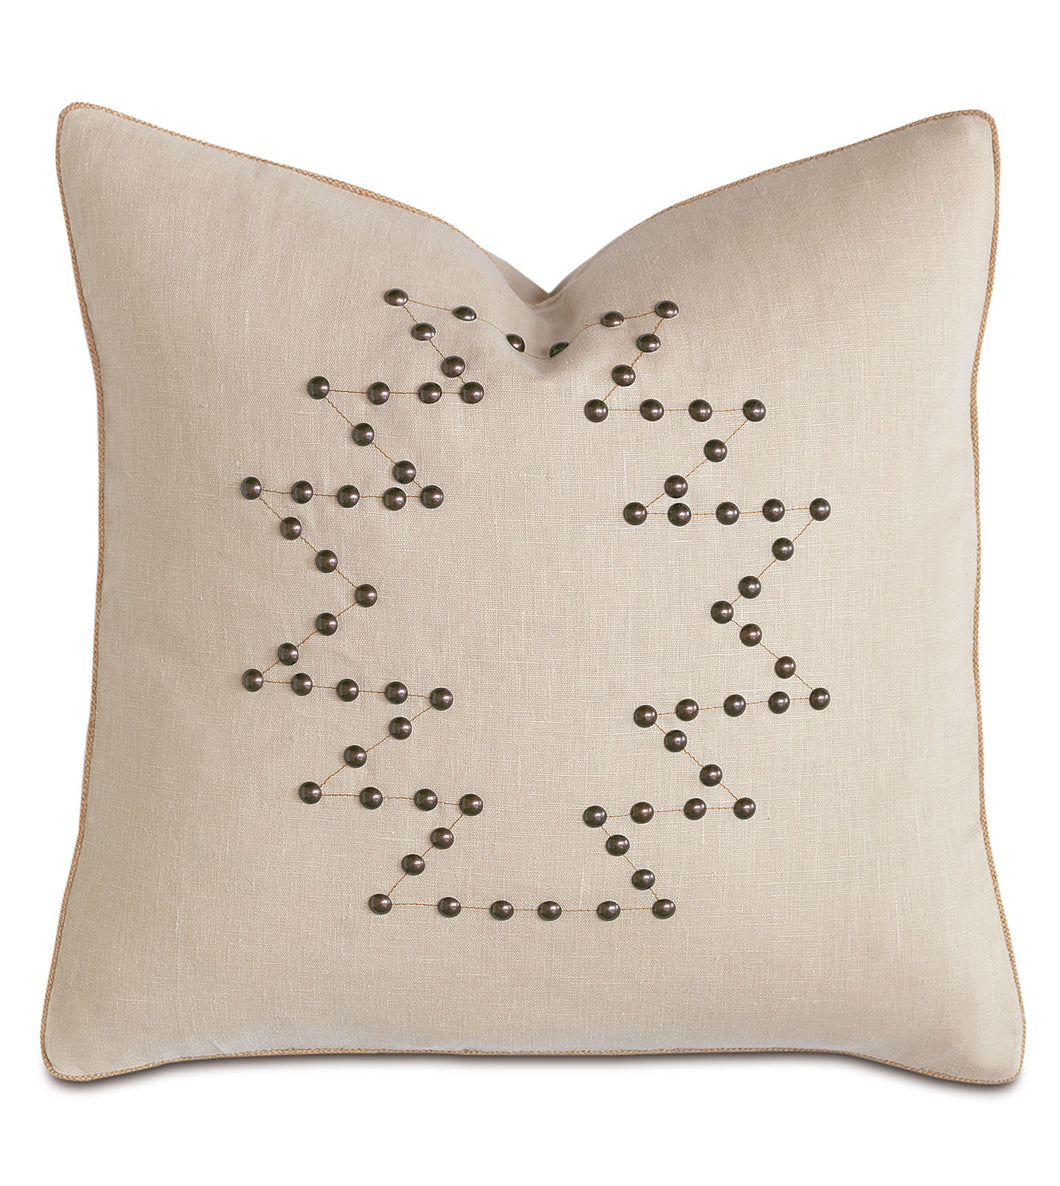 Champagne Linen Mountain Cabin Geometric Studded Throw Pillow 20